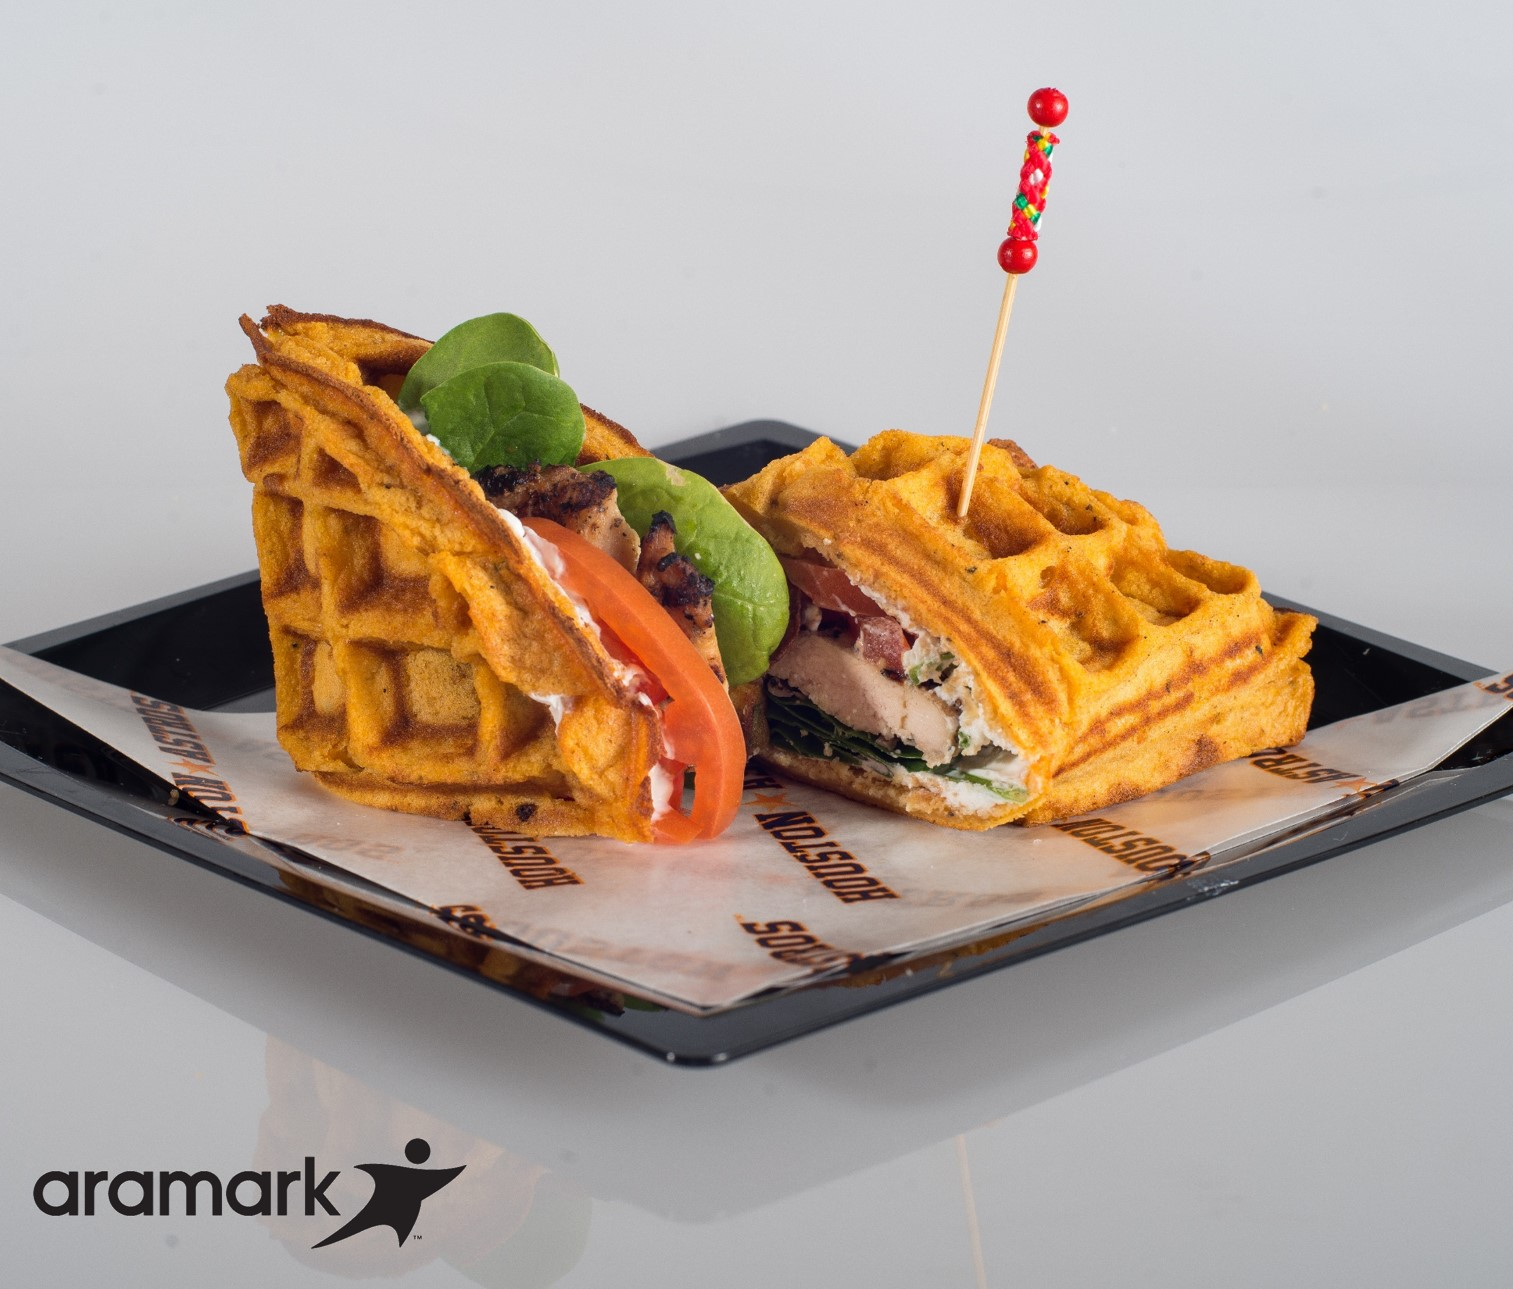 Sweet Potato Waffle Chicken Sandwich – Homemade sweet potato waffle with grilled chicken breast, Greek yogurt, baby spinach and sliced tomatoes (Minute Maid Park, Urban Bistro, Section 226)